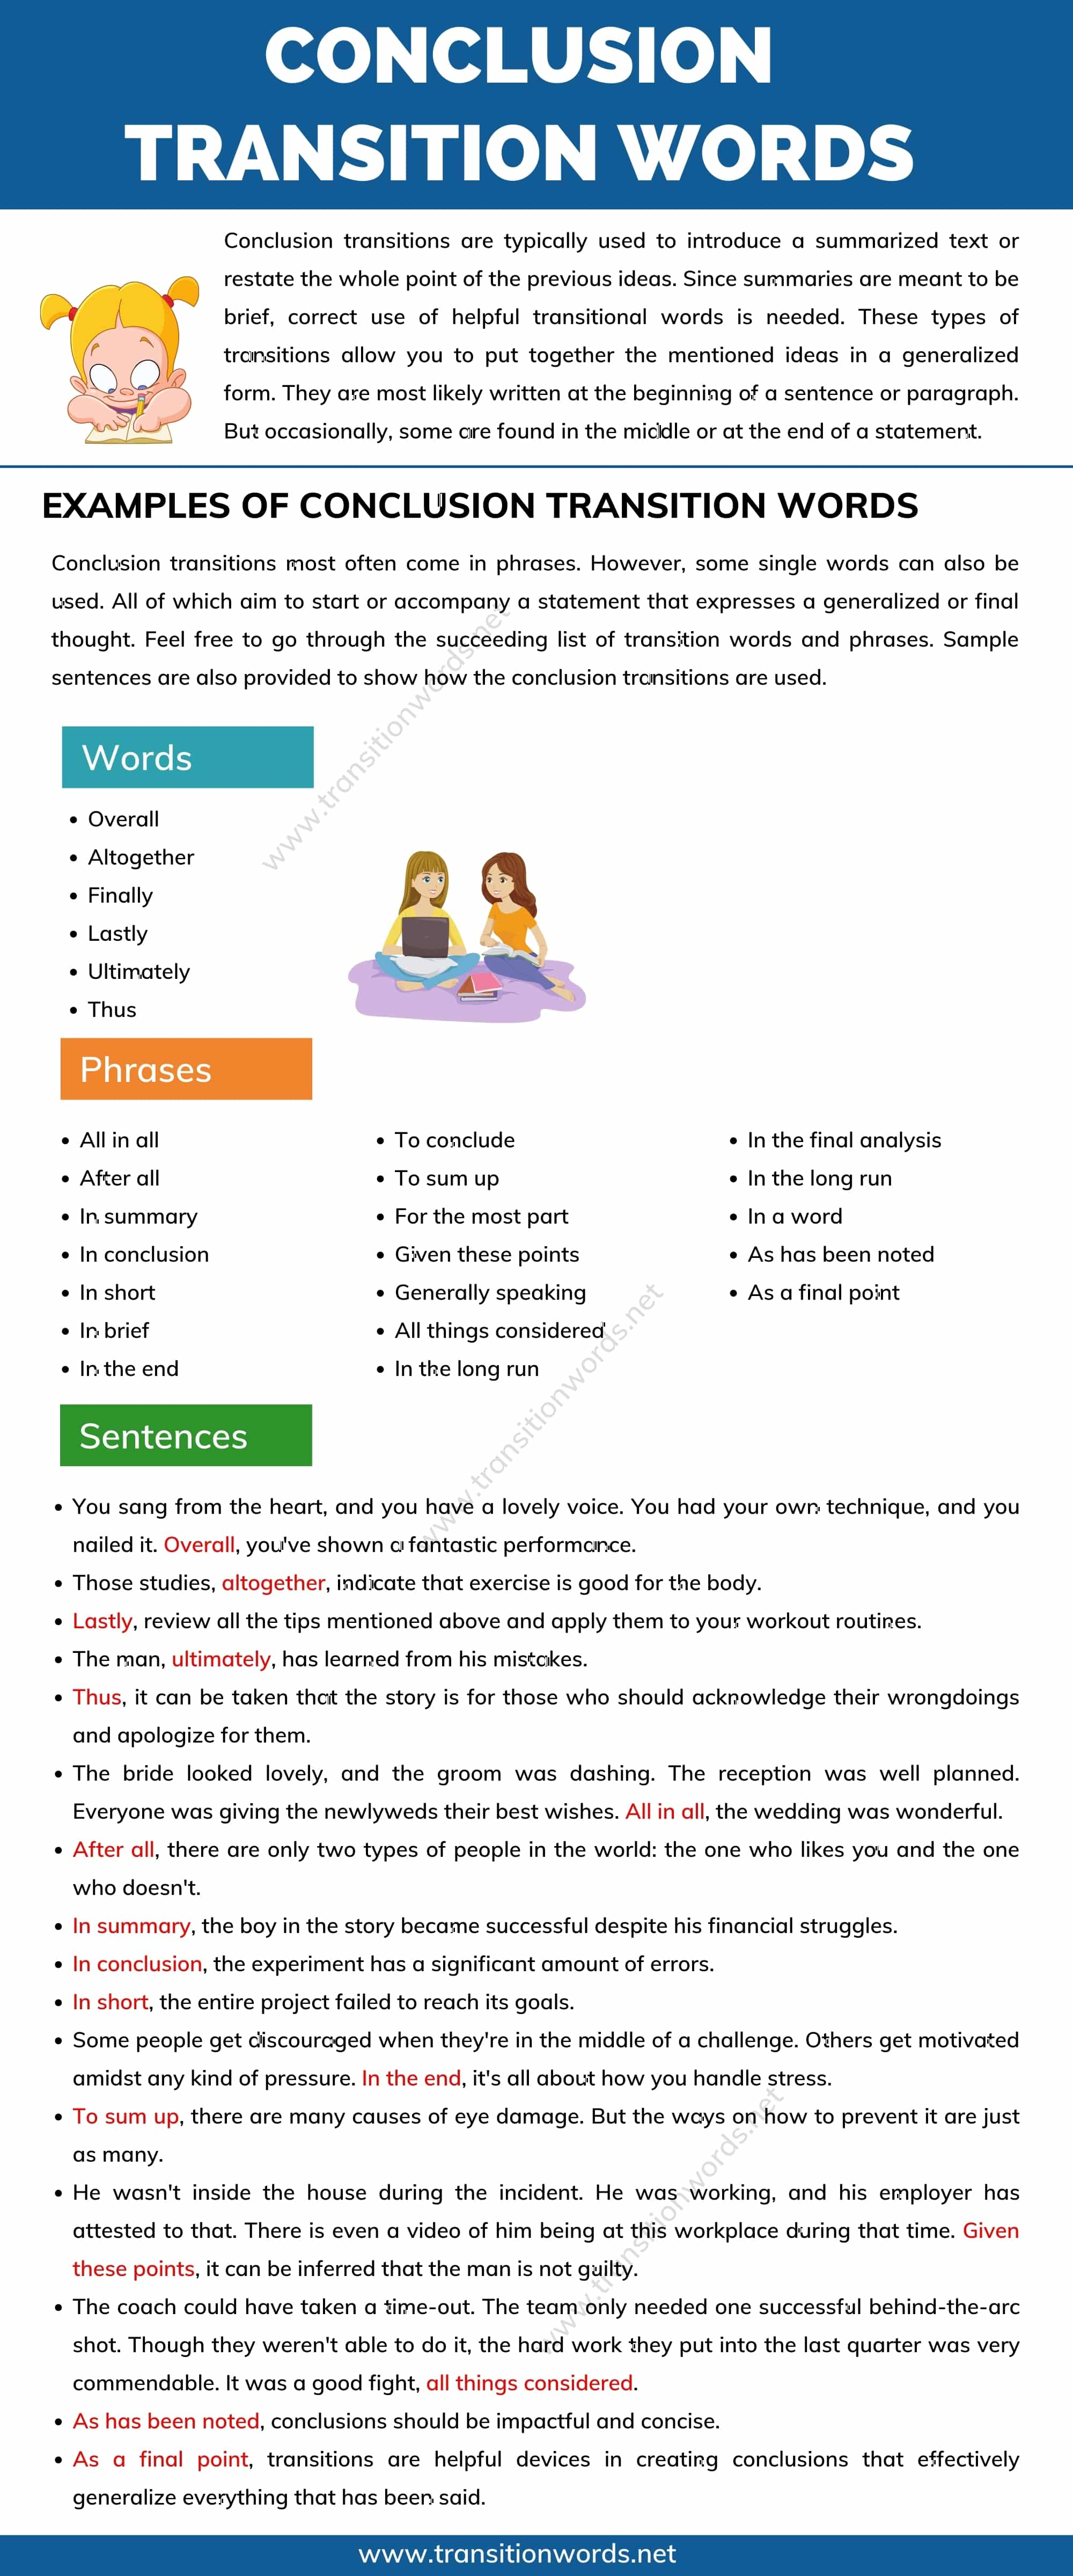 Conclusion Transition Words: Definition and Useful Examples